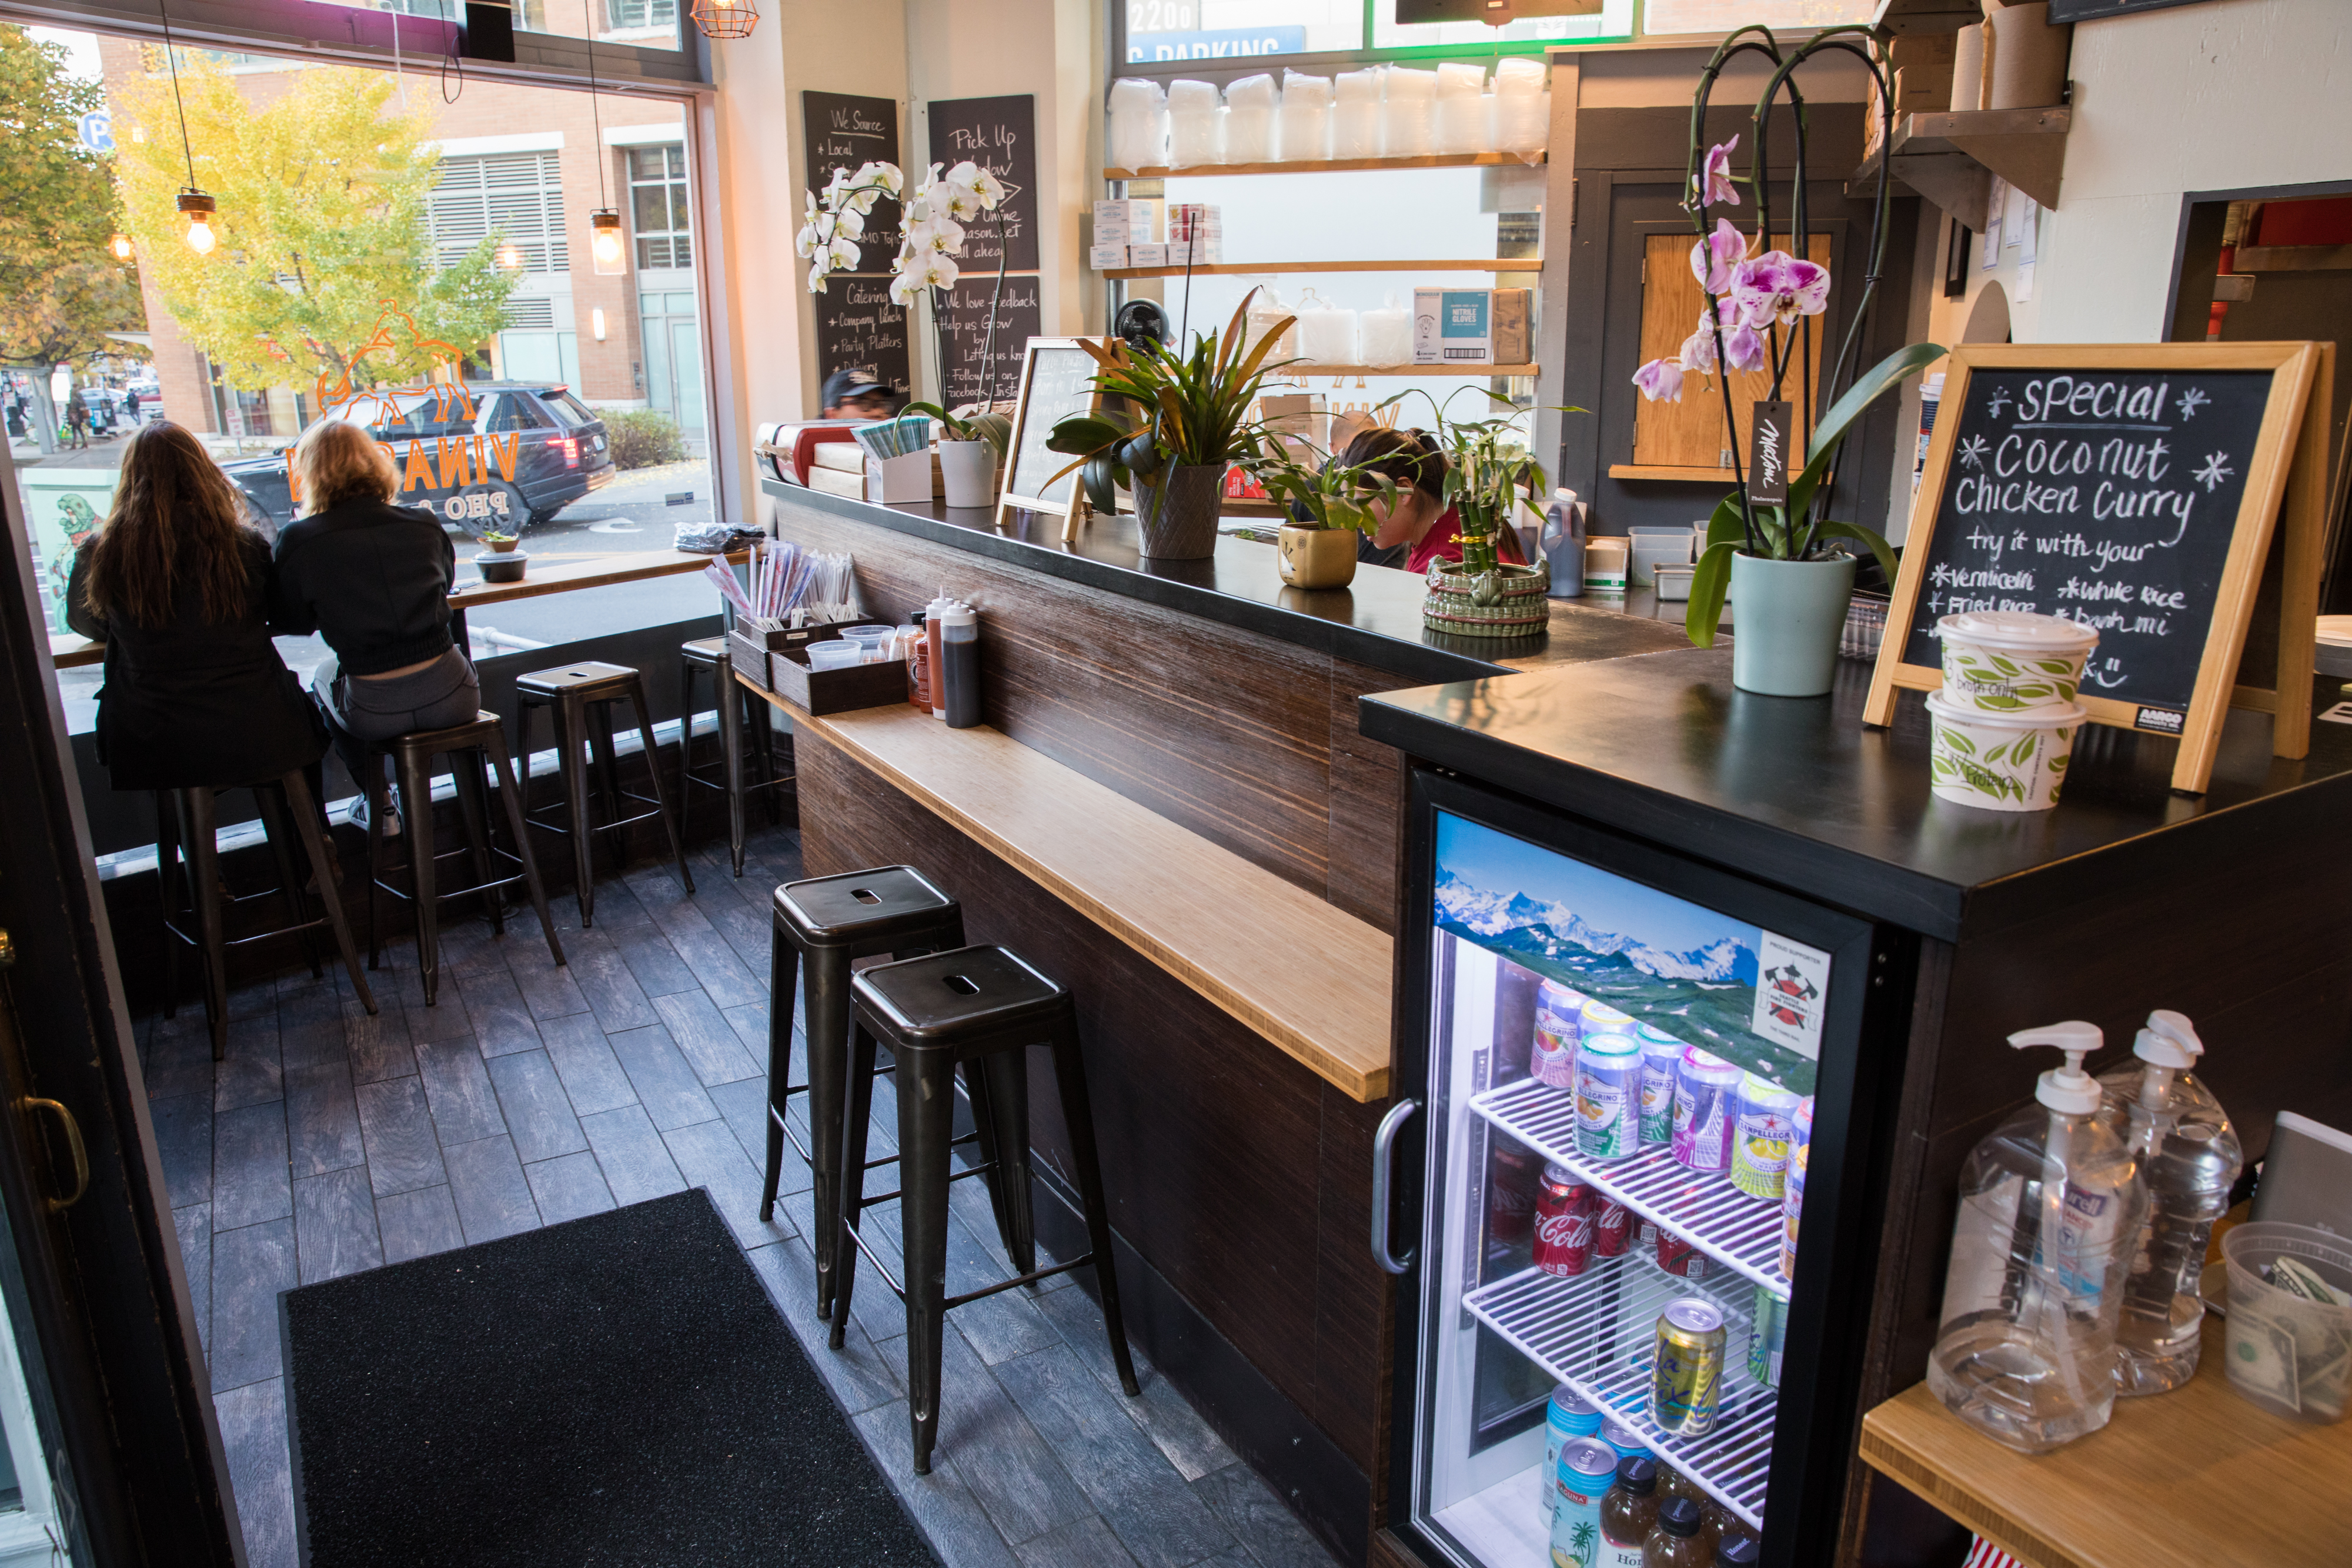 Where To Get Lunch In South Lake Union & Denny Triangle - South Lake